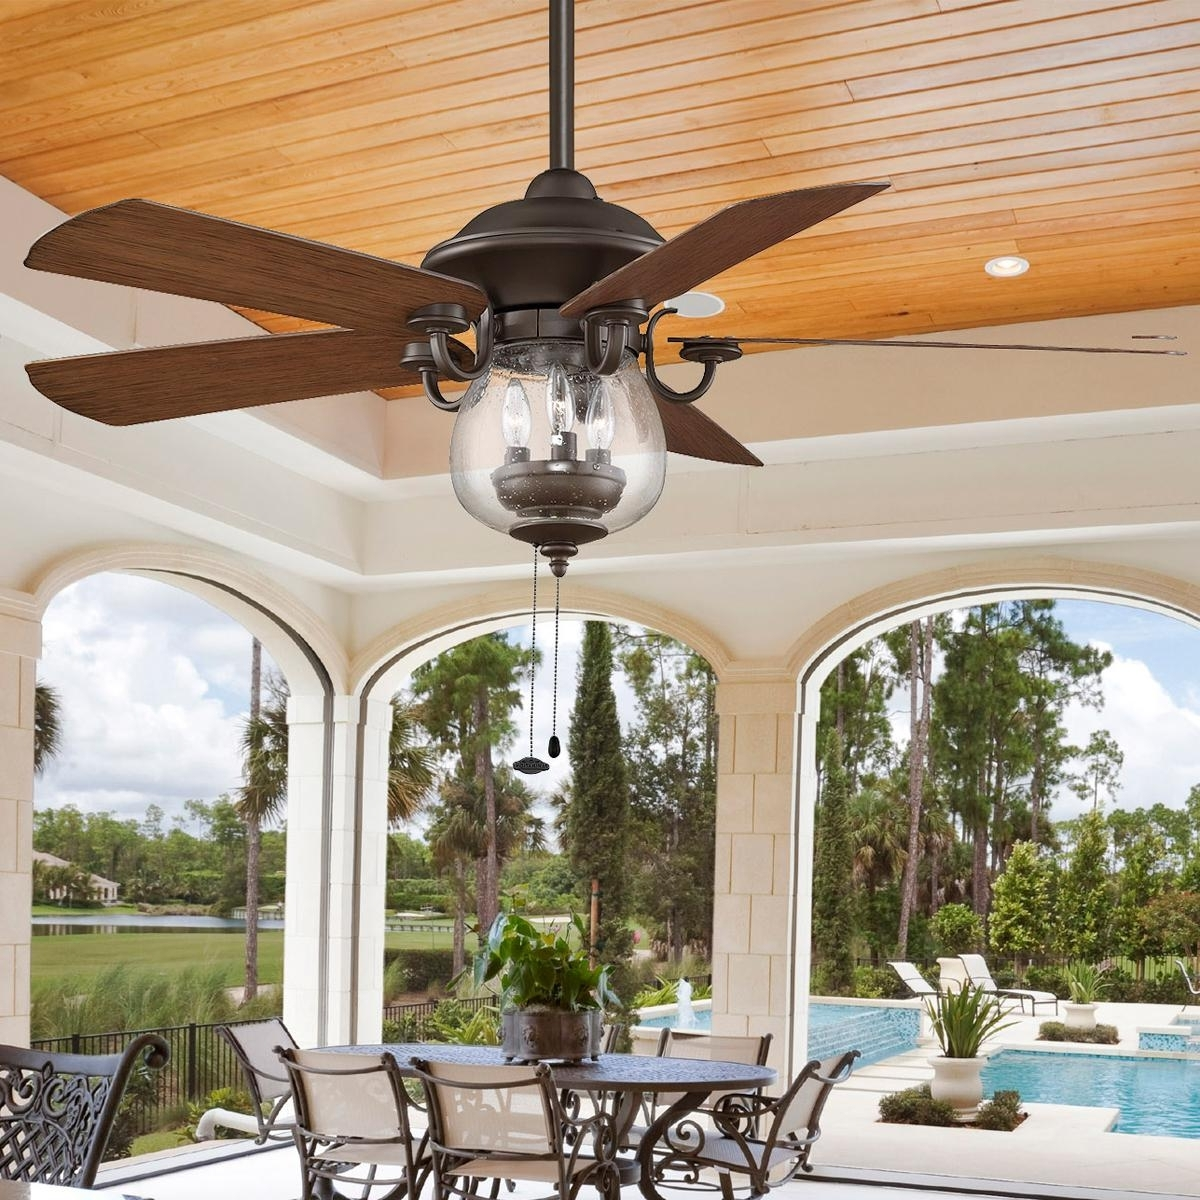 Most Current Outdoor Ceiling Fans With Lantern Light In Ceiling Fan: Recomended Exterior Ceiling Fans Ideas Outdoor Fans (View 13 of 20)